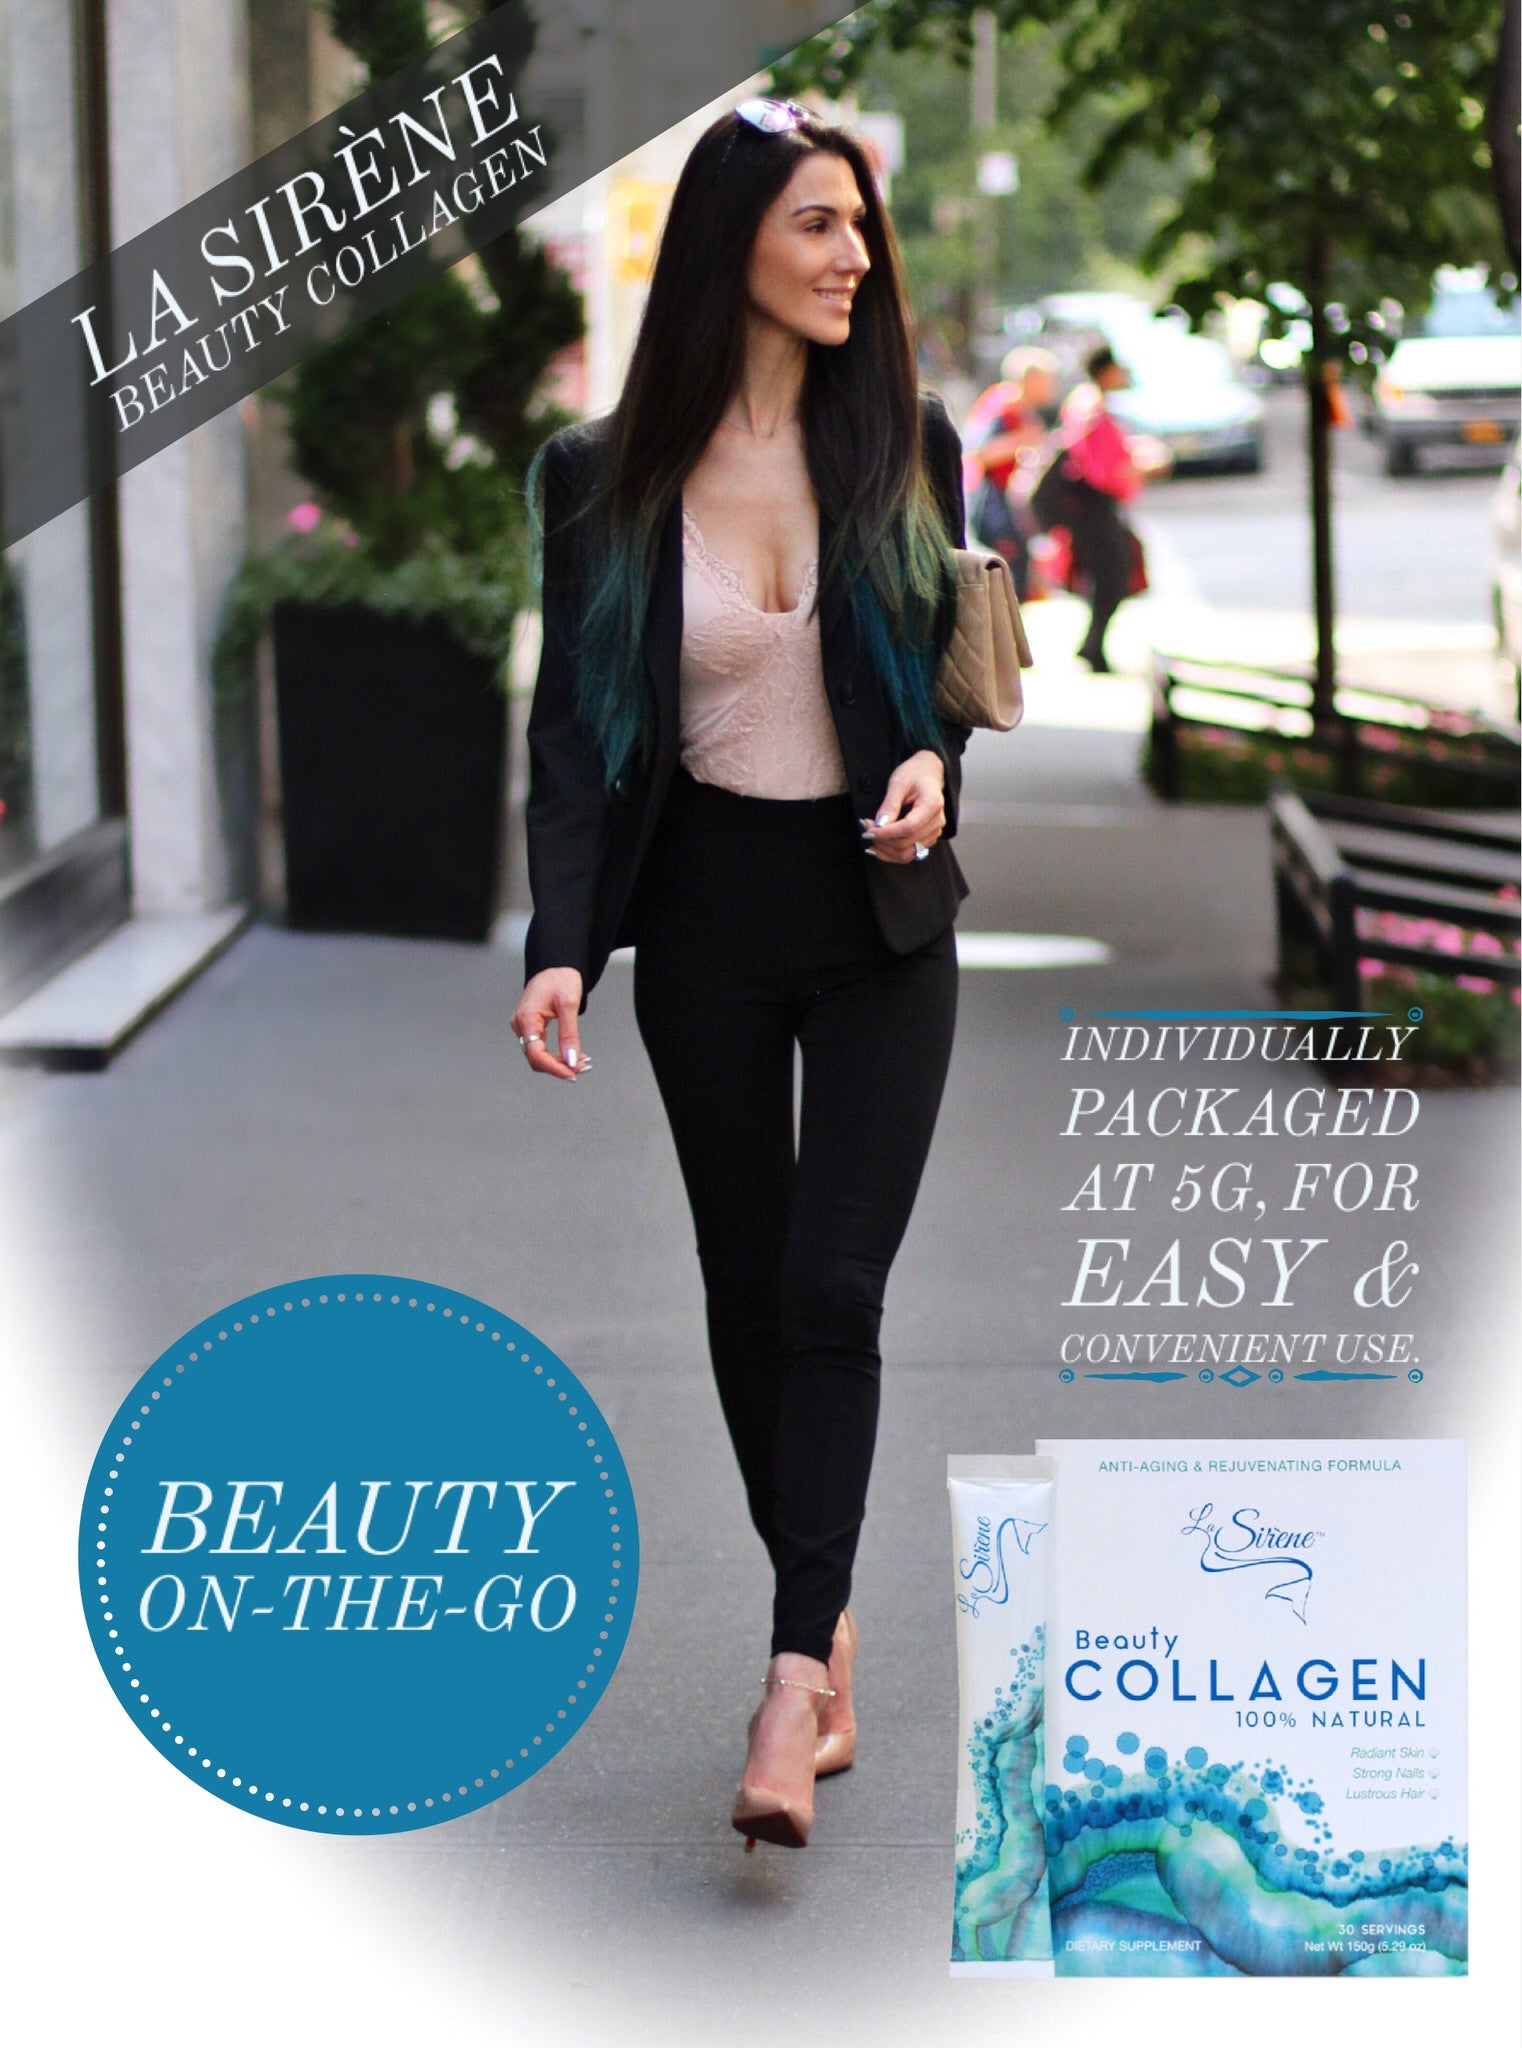 La Sirène Marine Collagen, Beauty-On-The-Go